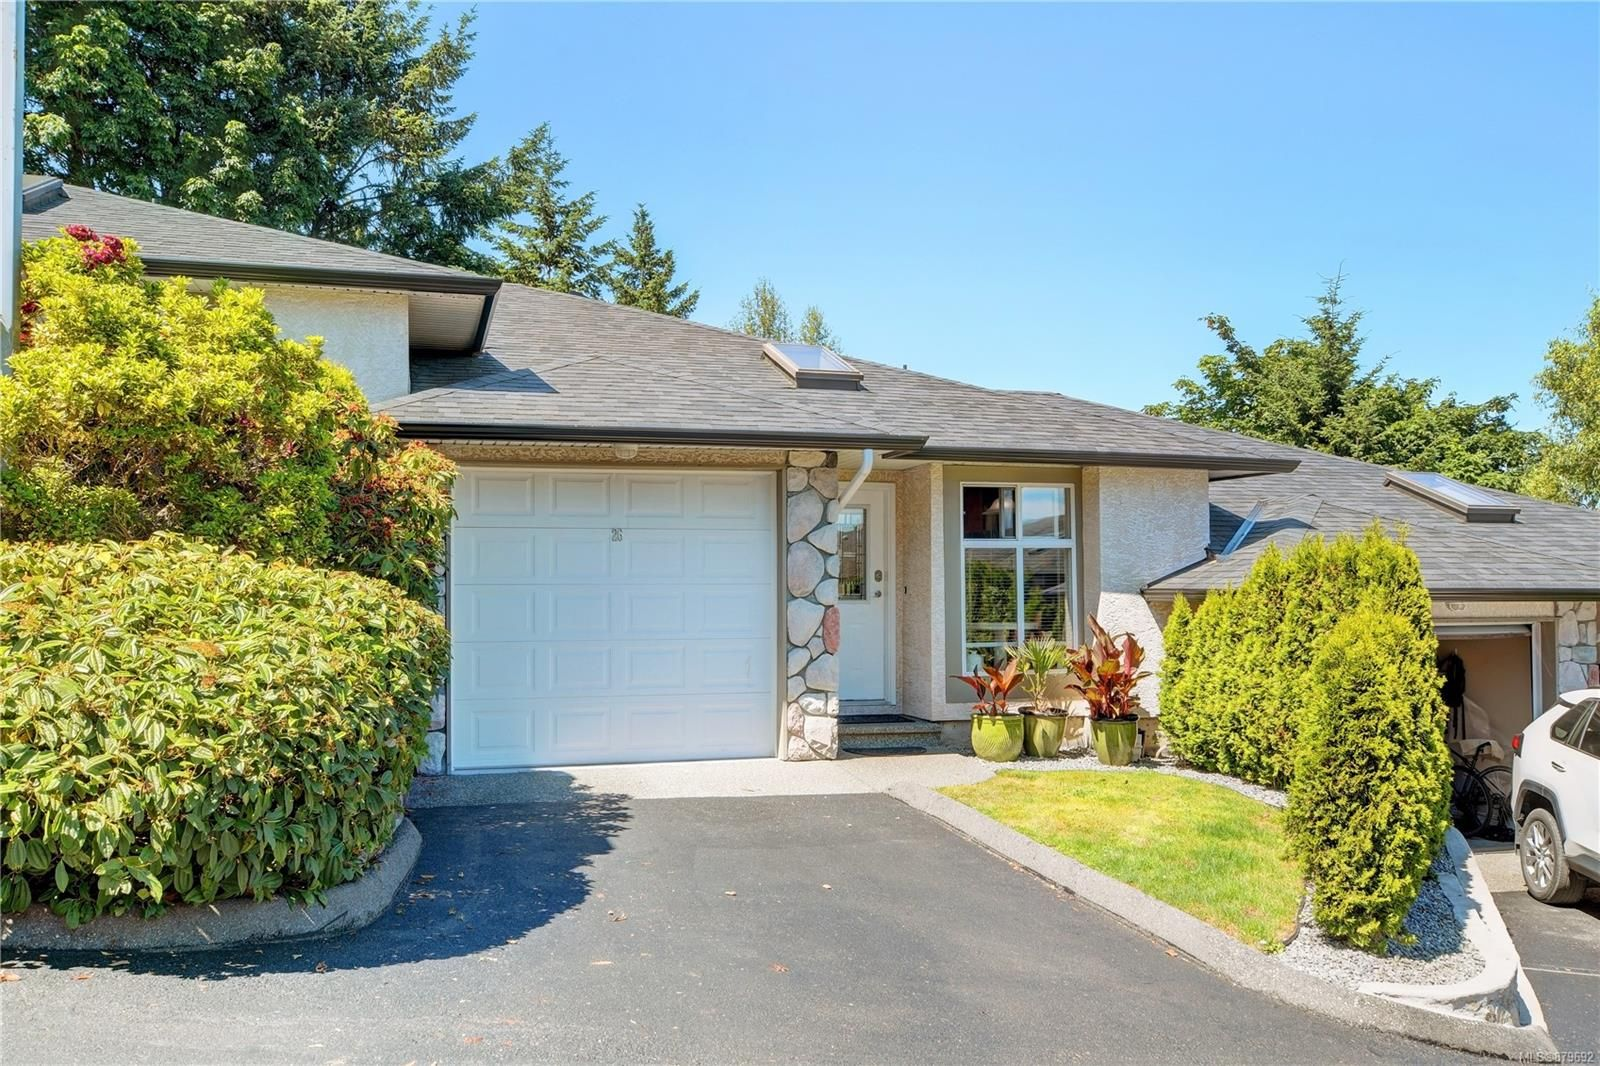 Main Photo: 26 300 Six Mile Rd in : VR Six Mile Row/Townhouse for sale (View Royal)  : MLS®# 879692